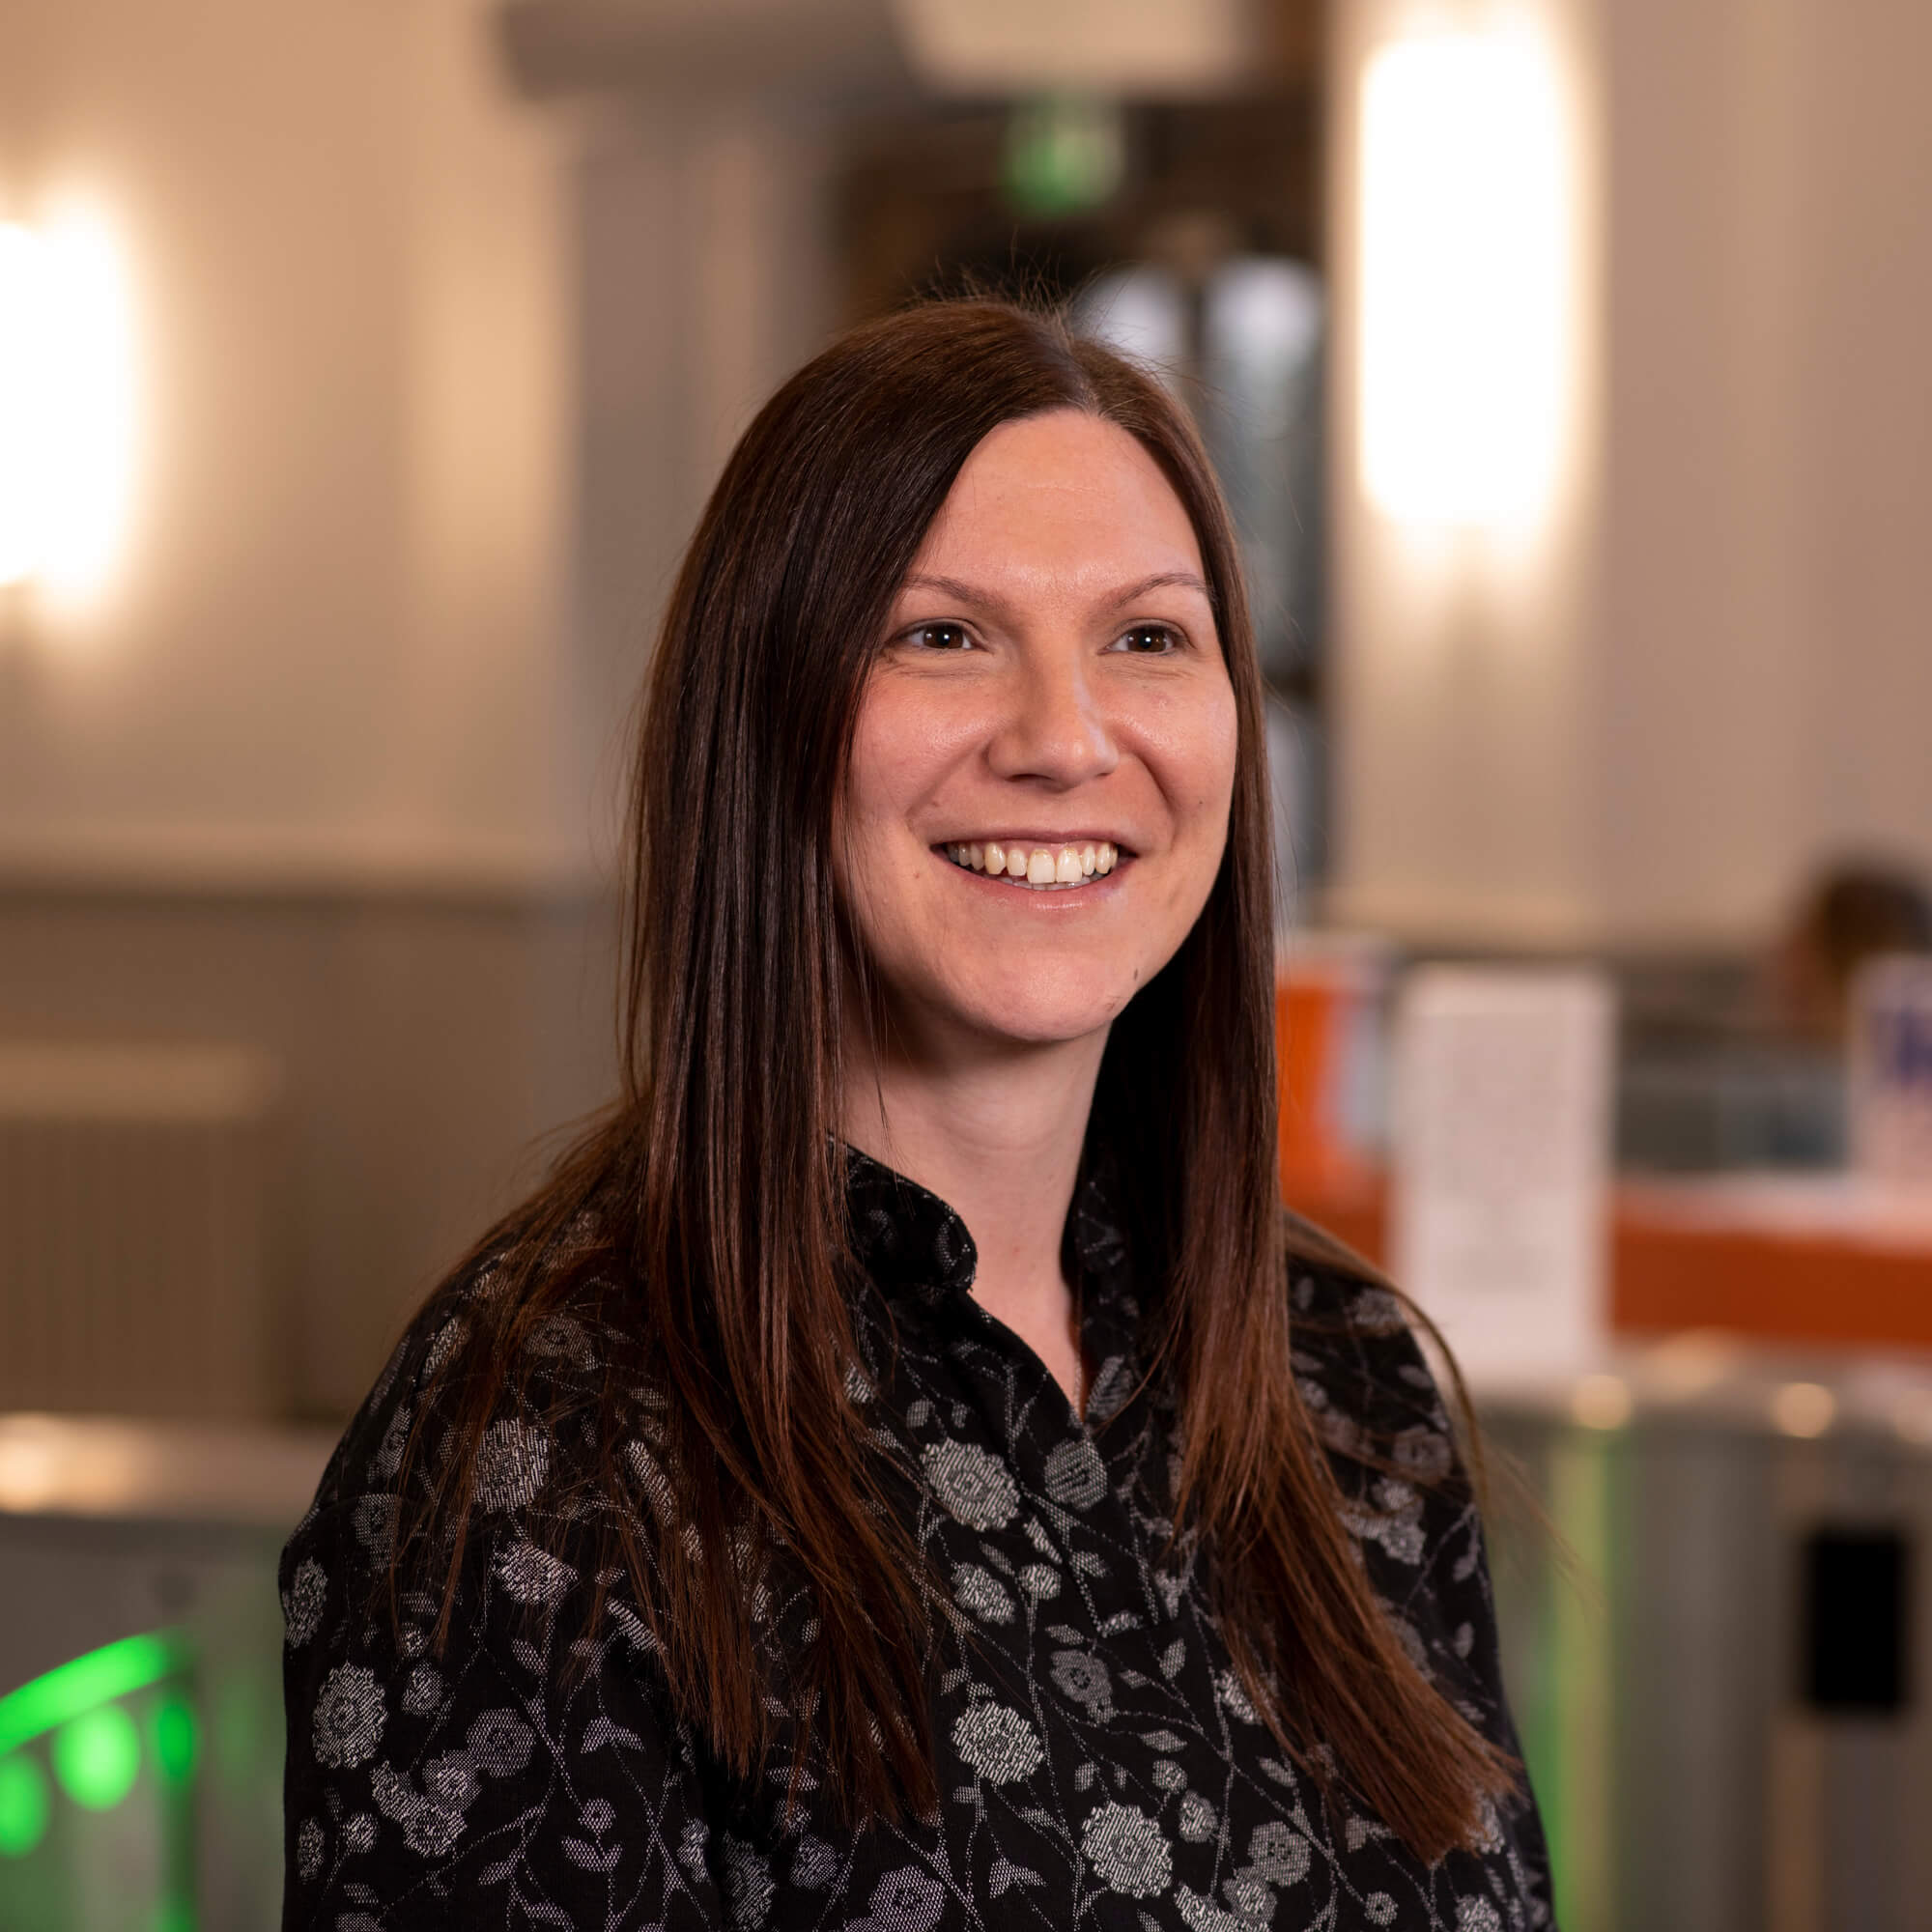 Stacey Westwood Lecturer in Pre-qualifying Health Care, Health and Social Care